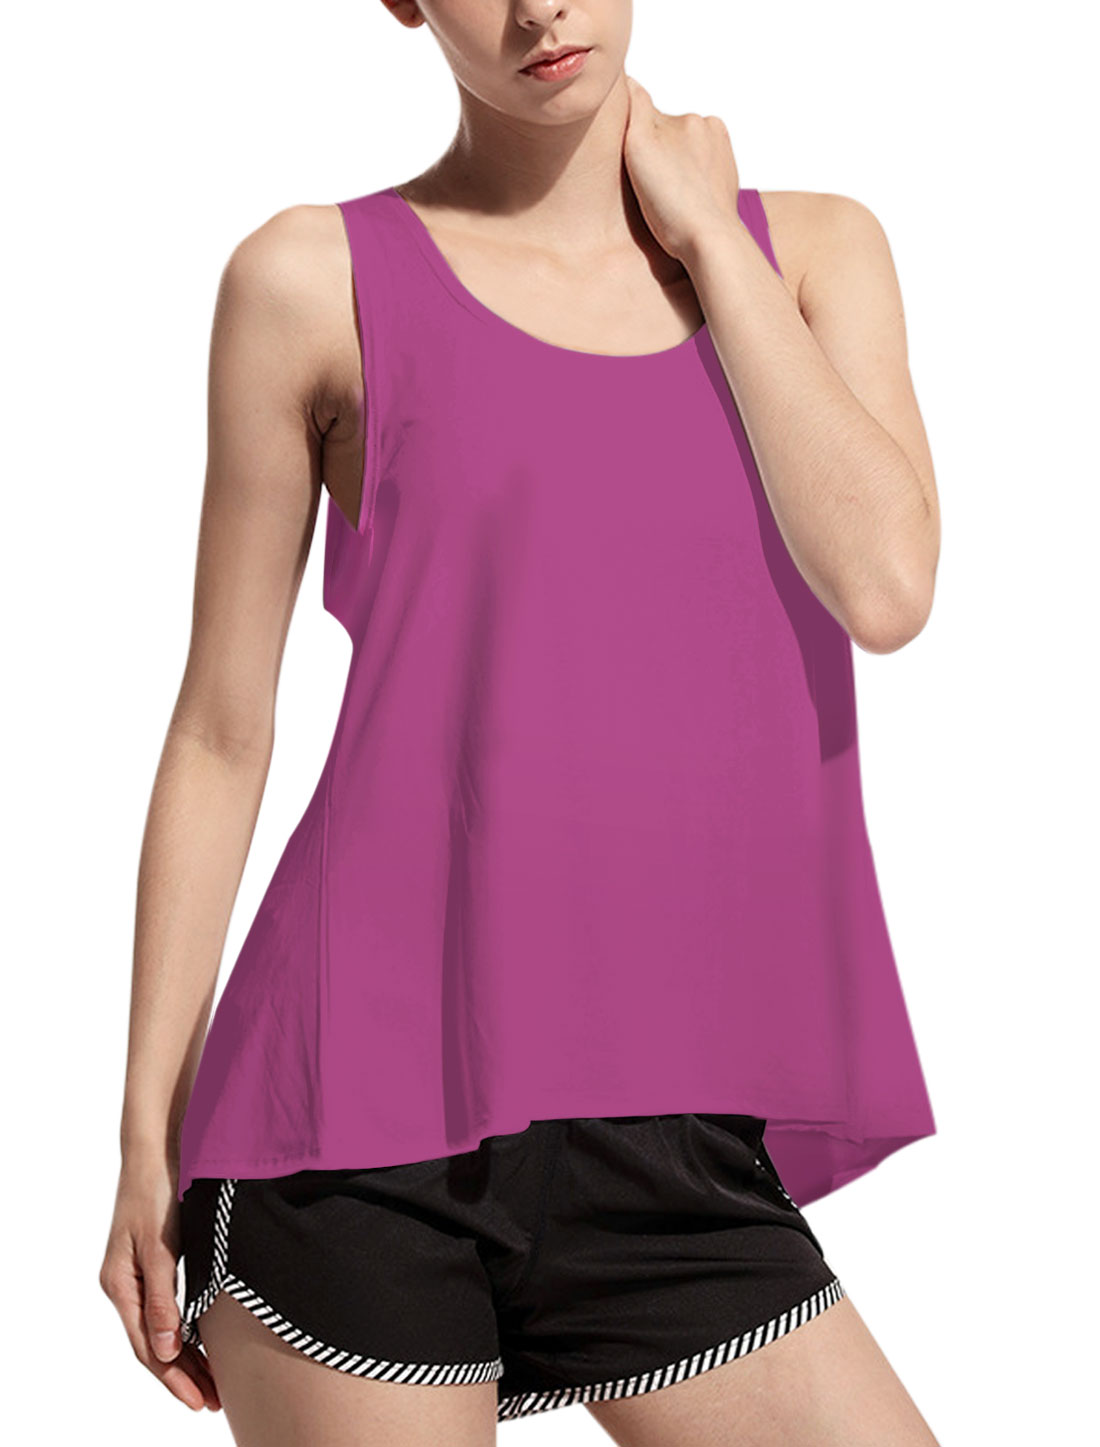 Women Sleeveless Scoop Neck Tulip Back Loose Tank Top Purple S